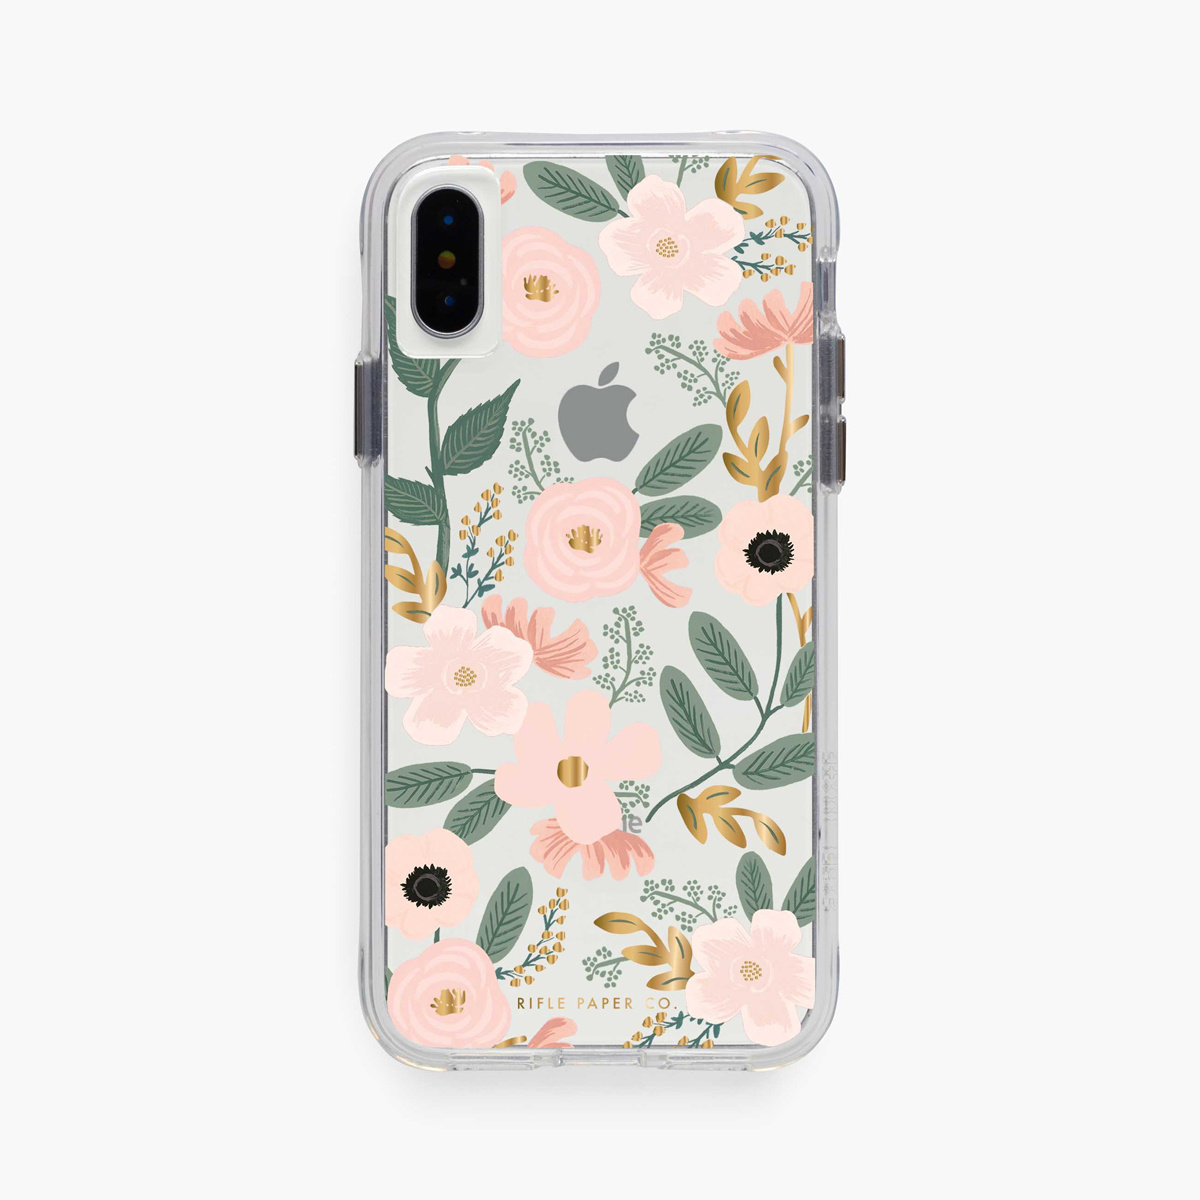 Rifle Paper Co. Wildflowers iPhone Case - Various Sizes